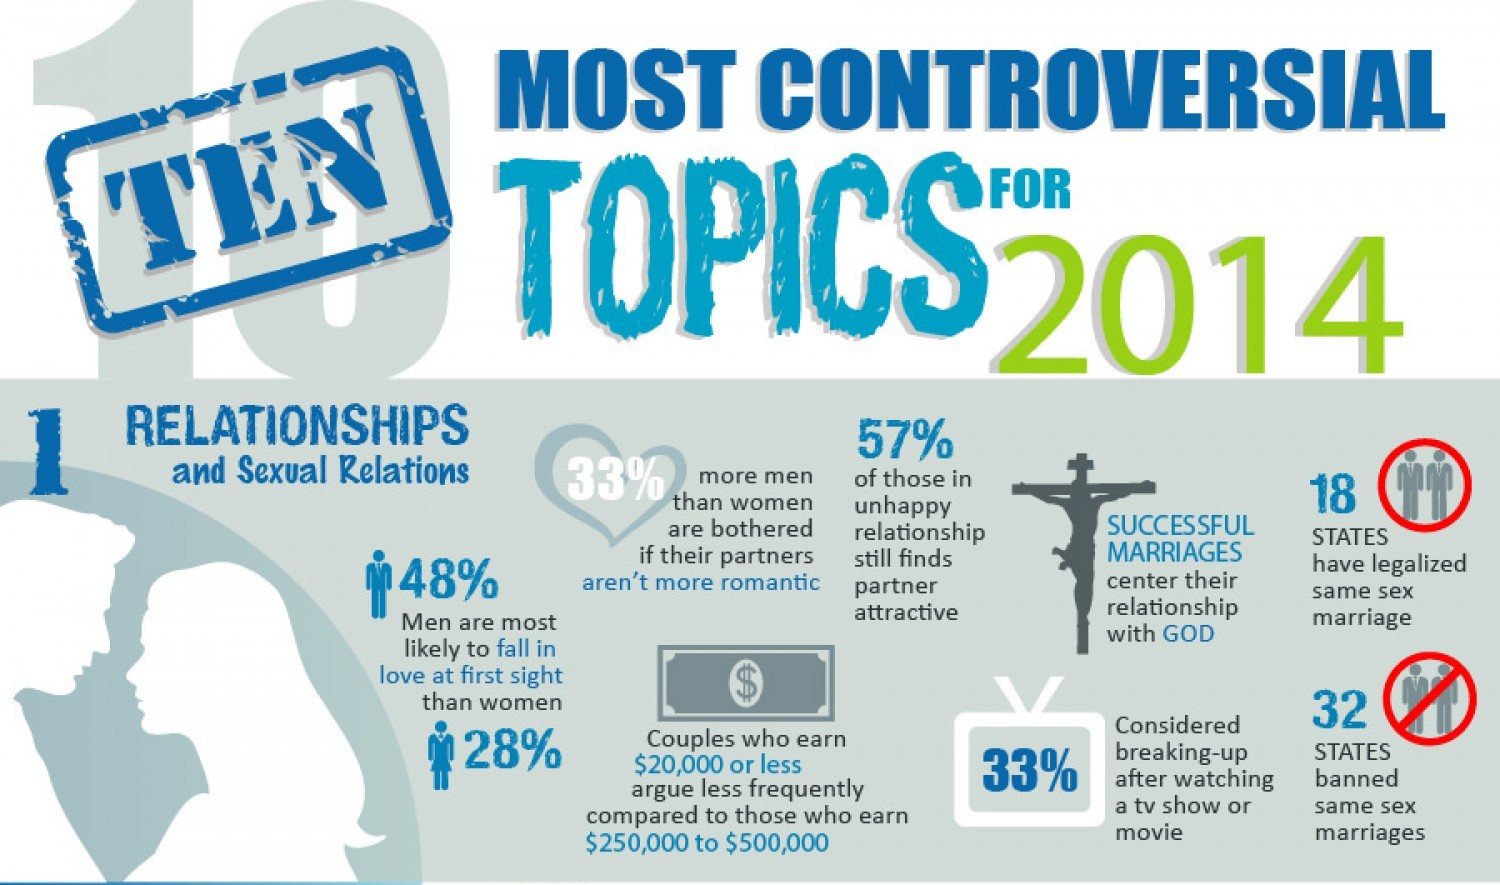 top controversial issues for essays Top 10 most controversial marketing topics in 2016 published on june 1, 2016 tanya dale as marketers we have to stay on top of all things digital.